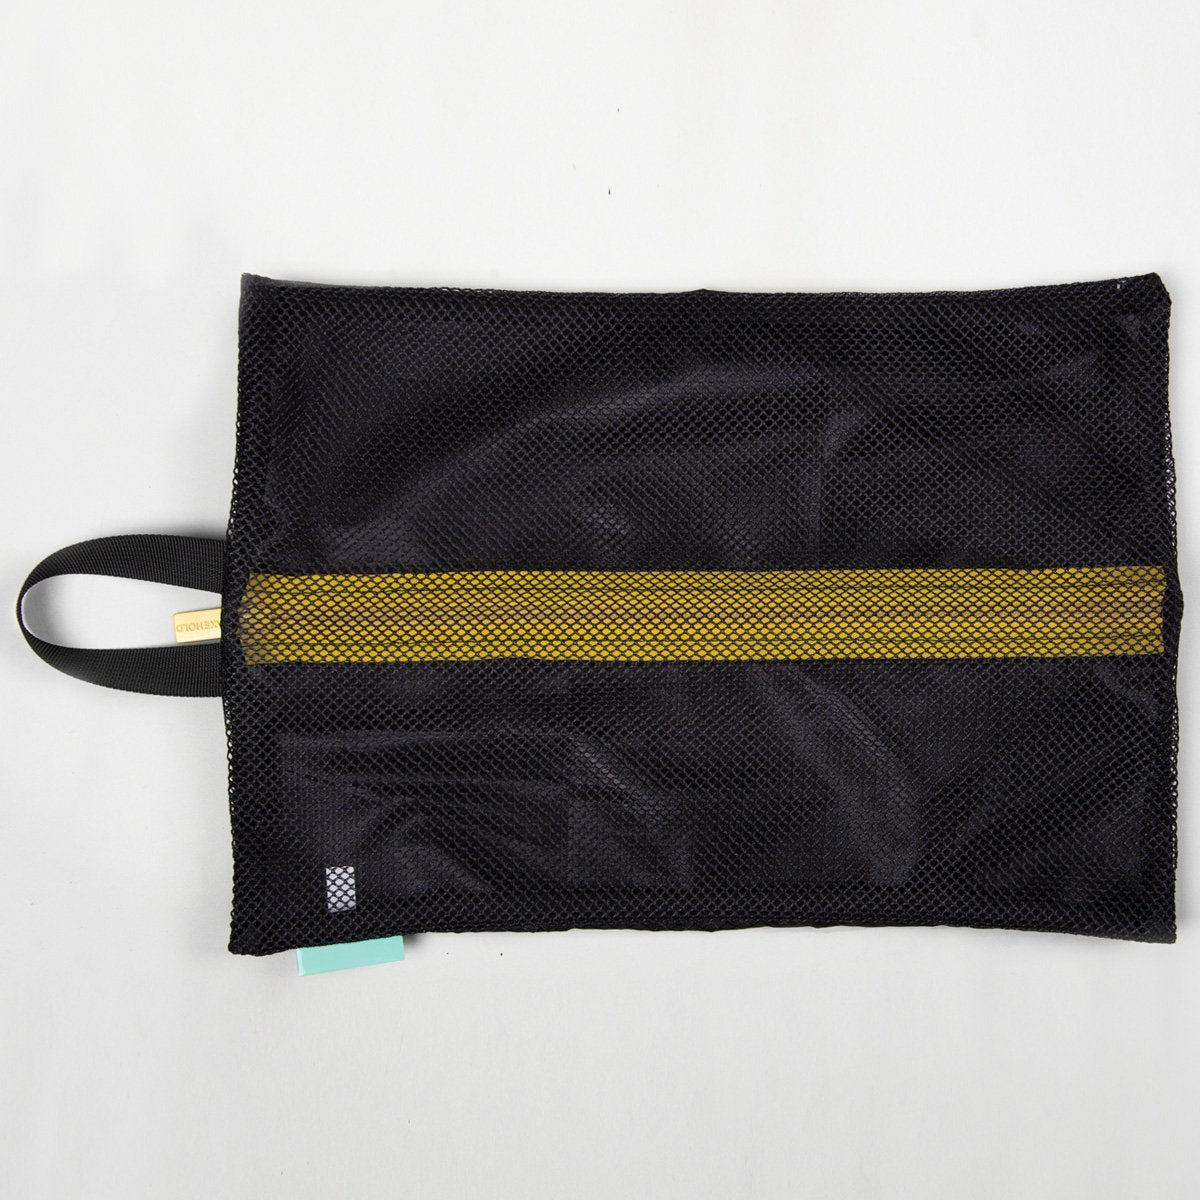 So iLL Breathable Shoe Bag – Black Bags